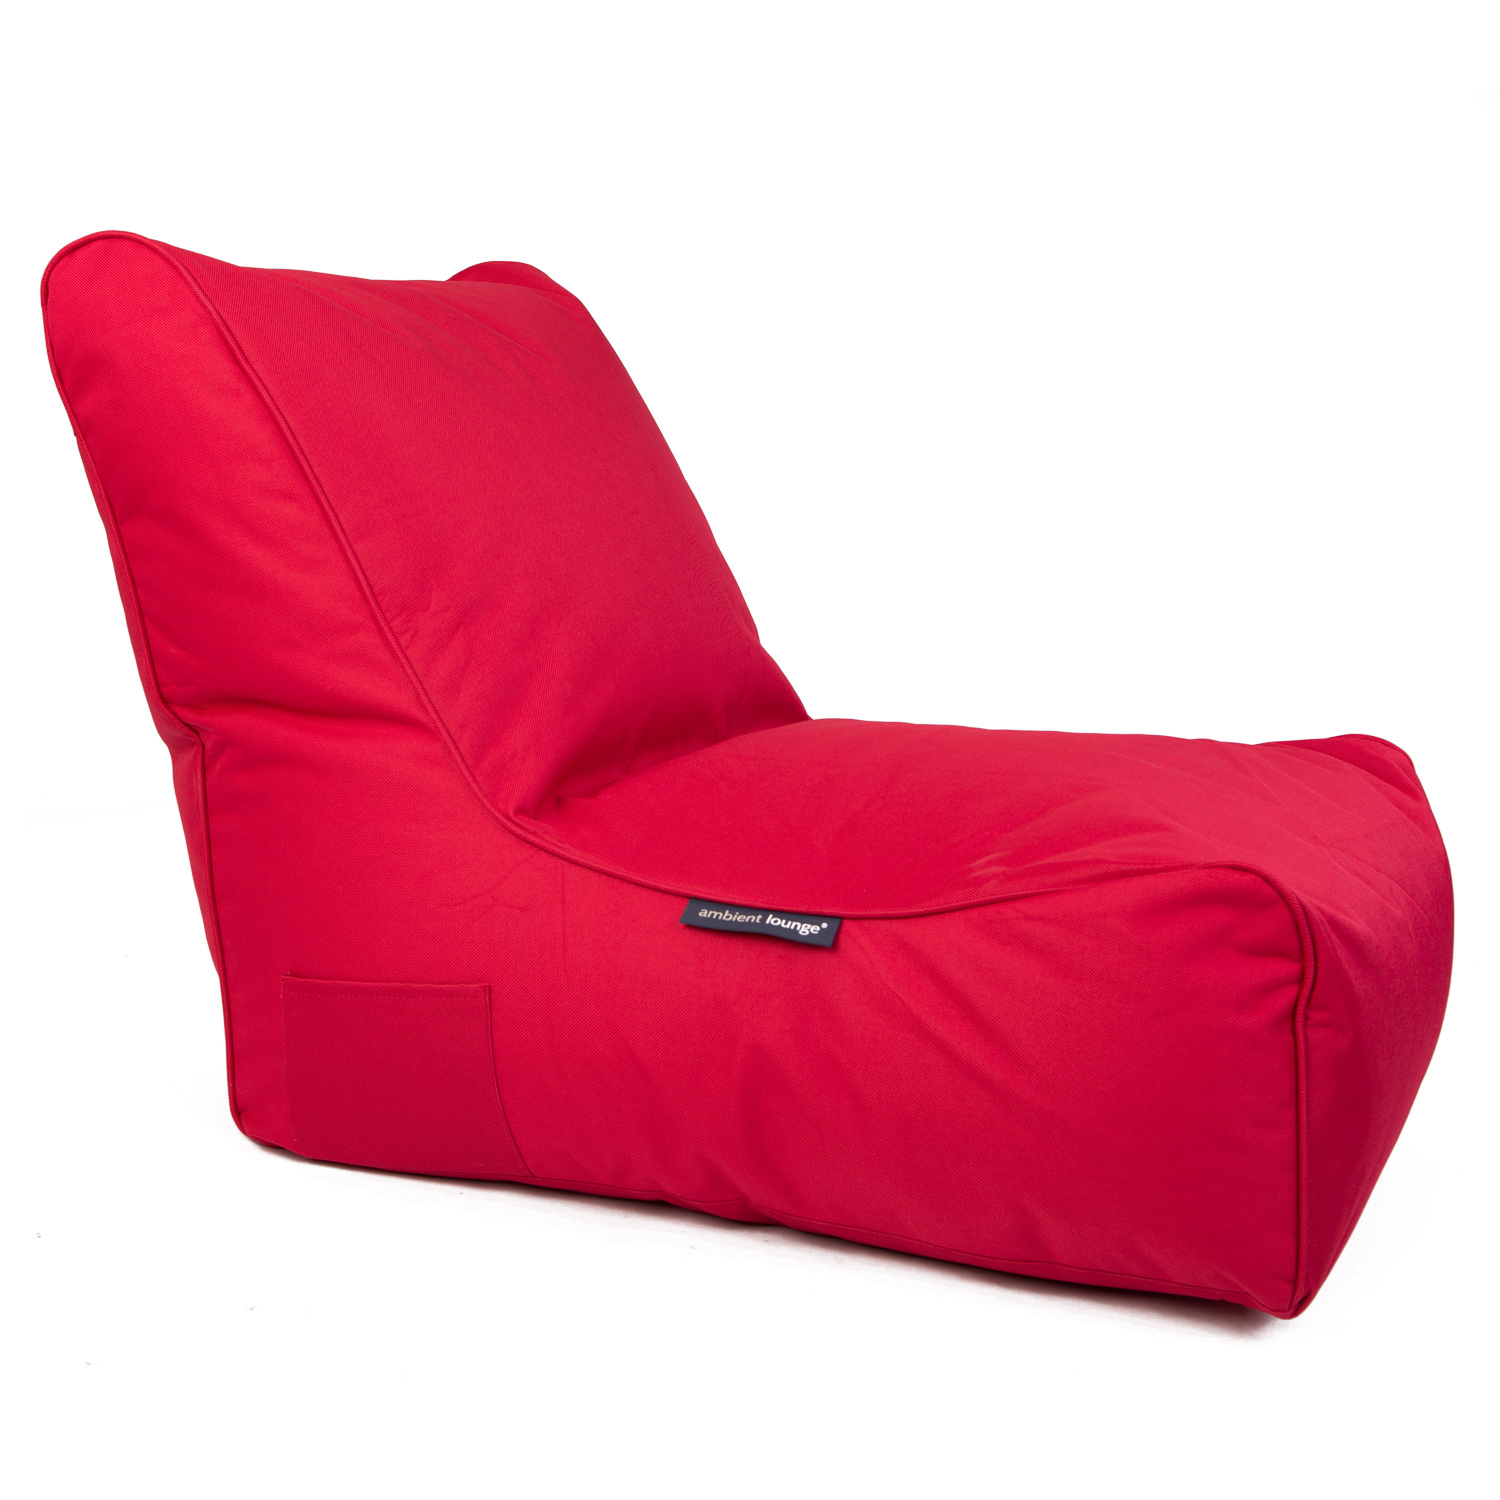 Outdoor Bean Bags Evolution Sofa Toro Red Bean Bags